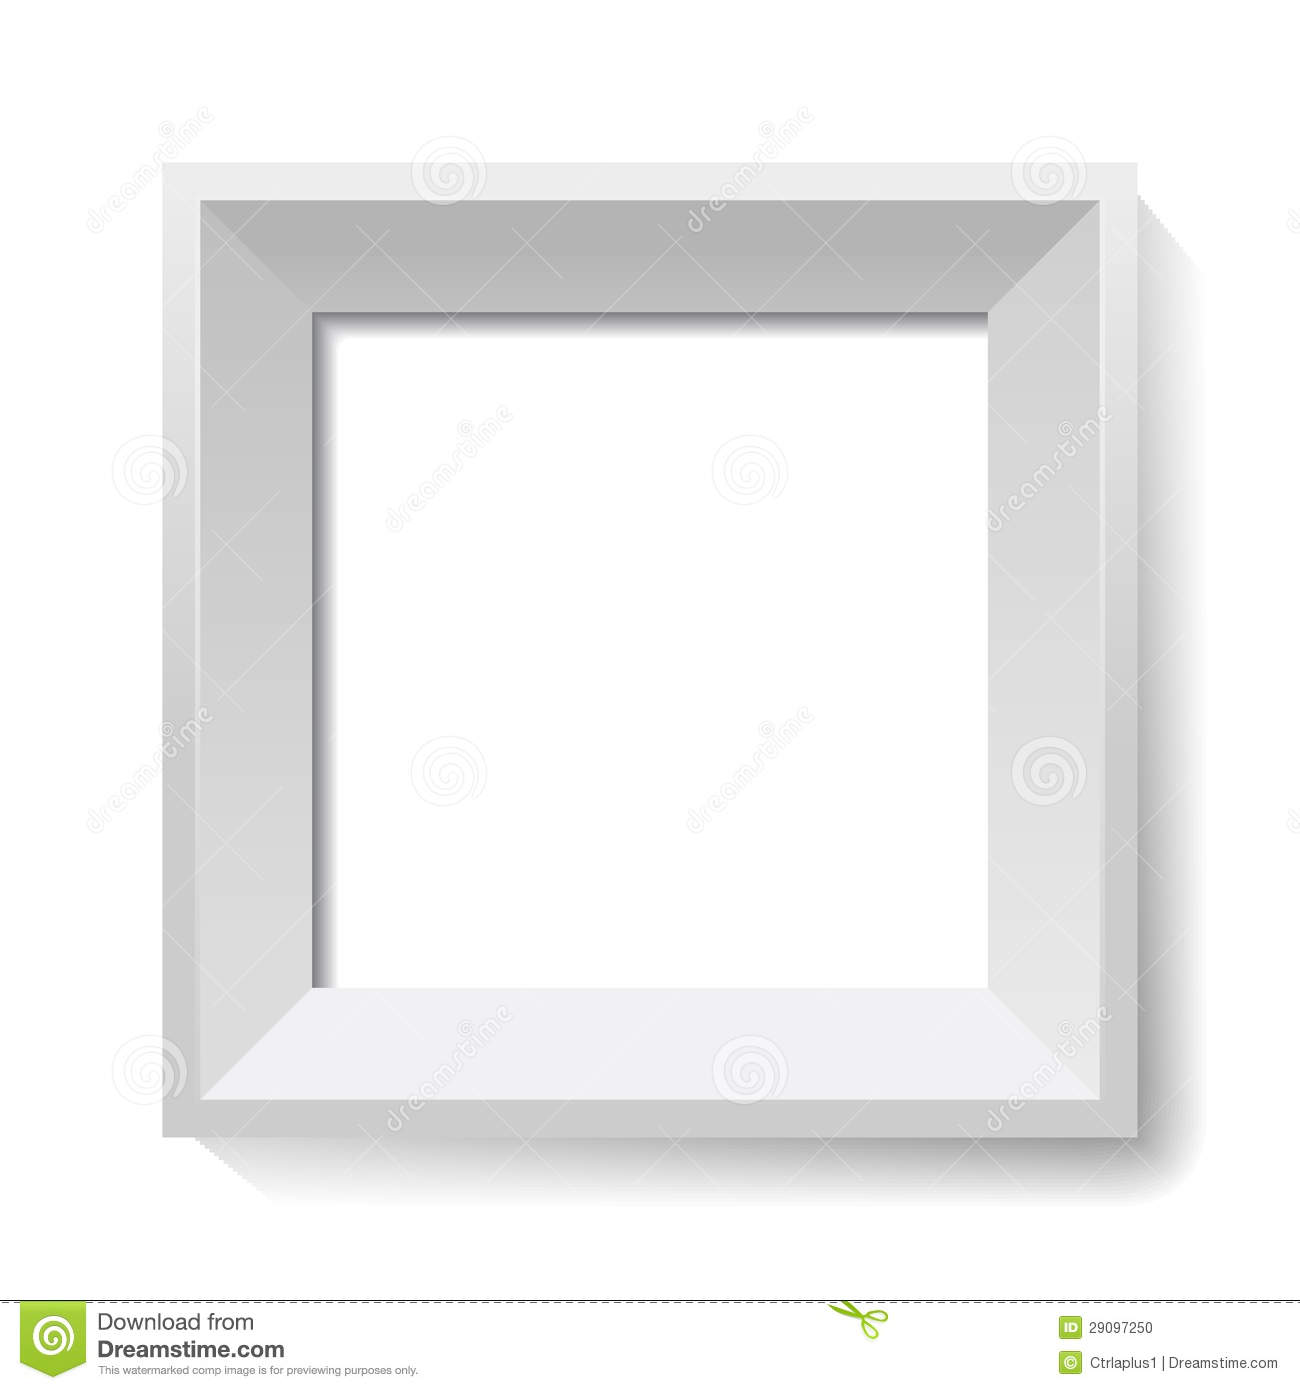 White Image And Photo Frame. Vector. Stock Vector - Illustration of ...